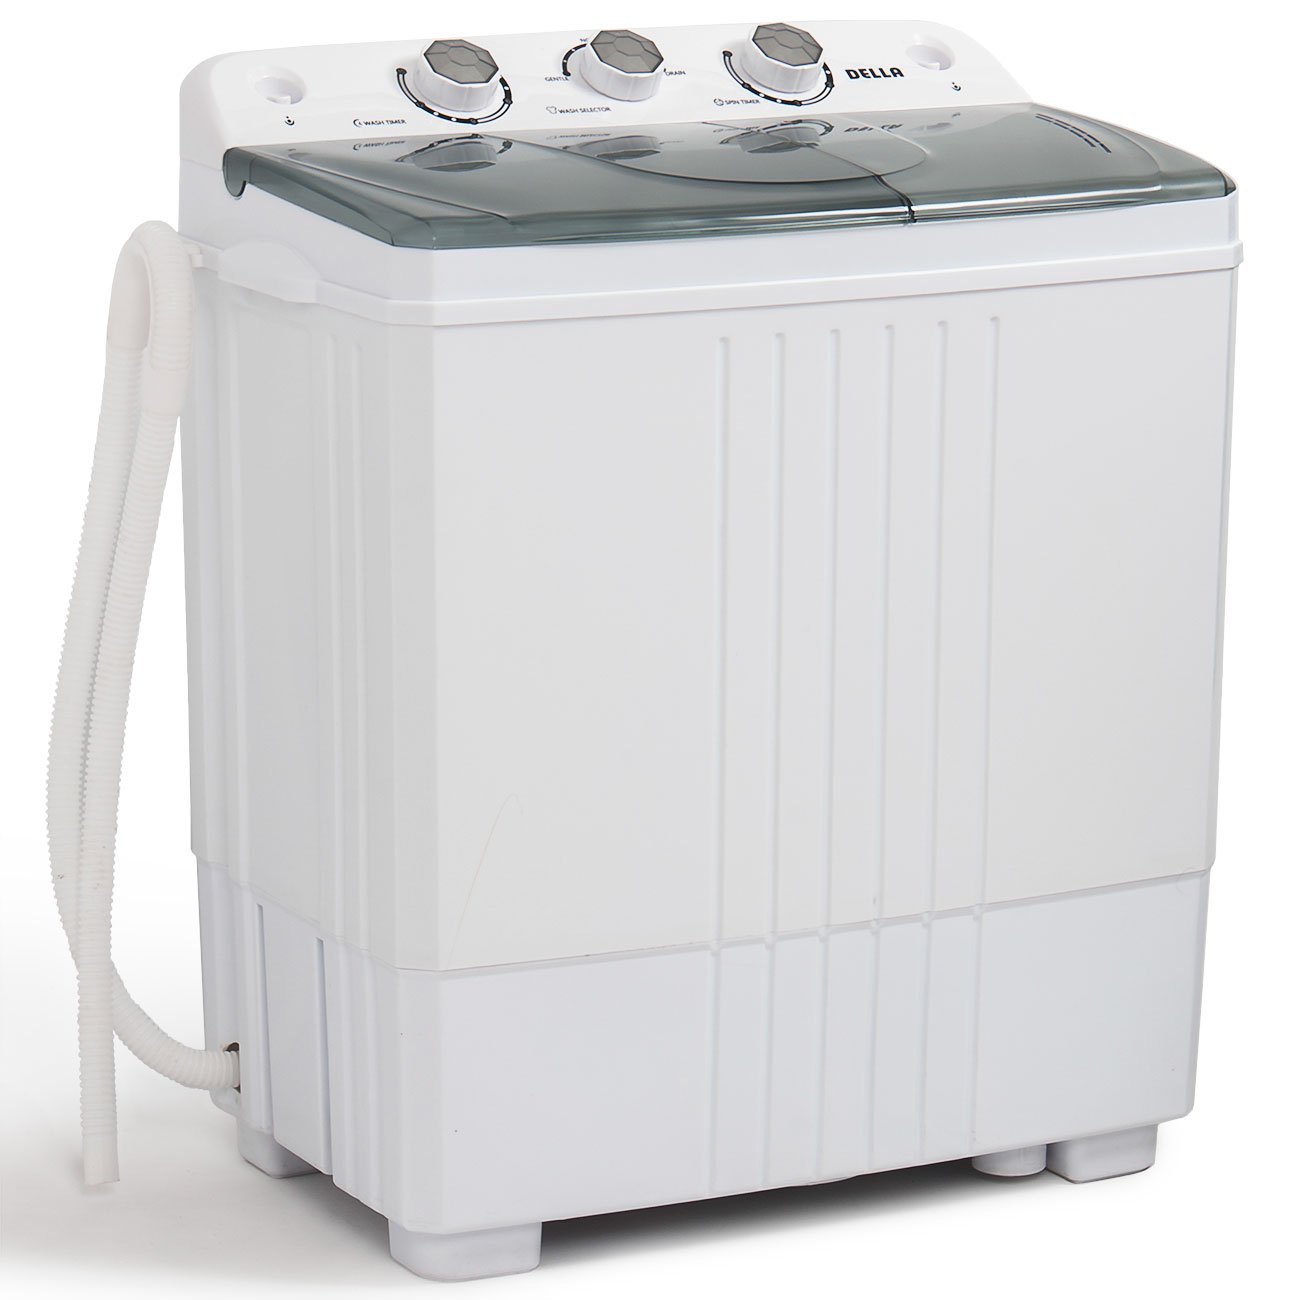 DELLA Small Compact Portable Washing Machine Washer 11lbs Capacity Top Load Laundry with Spin Dryer Combo